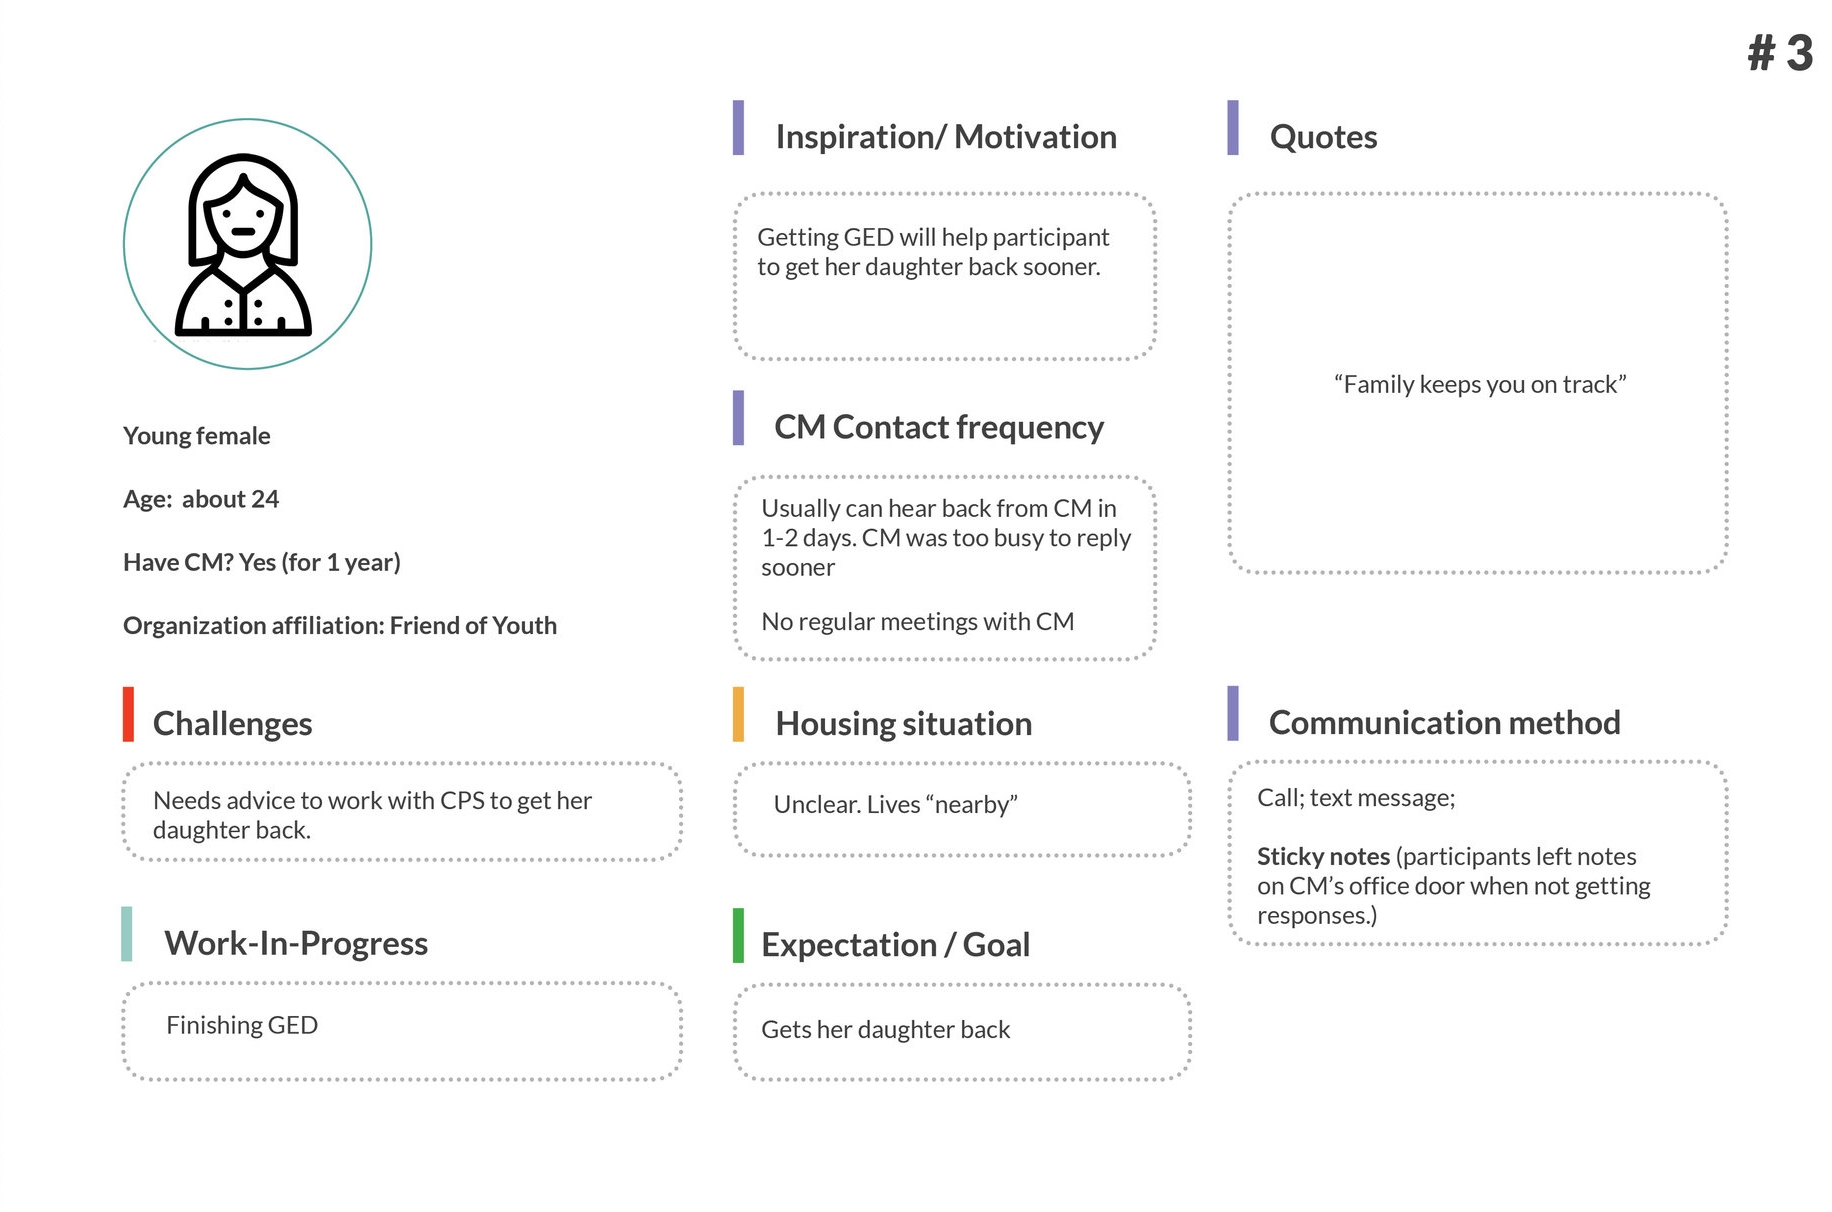 Intercept interview report card - Summary of user interview categorized to analyze patterns of user behaviors.